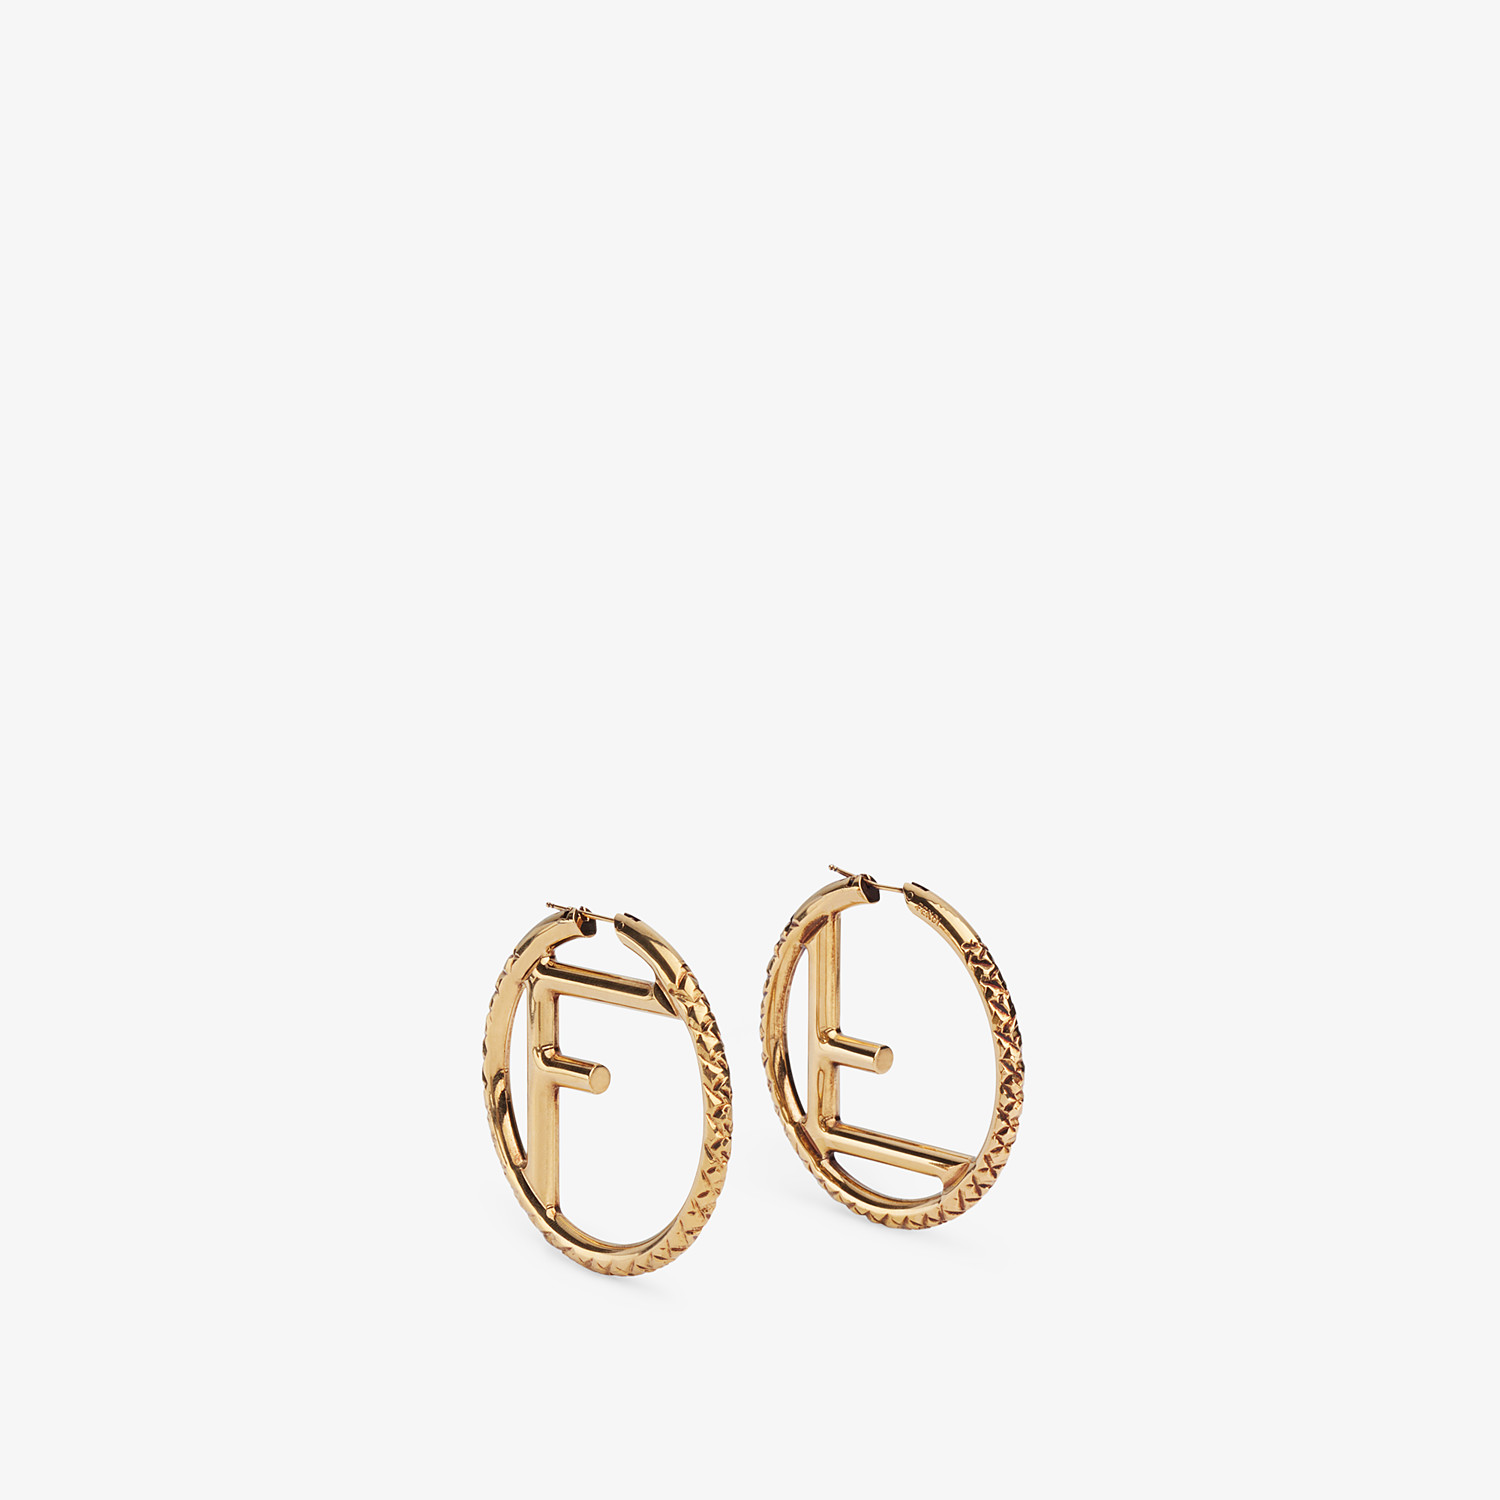 FENDI F IS FENDI EARRINGS - Gold-color earrings - view 1 detail